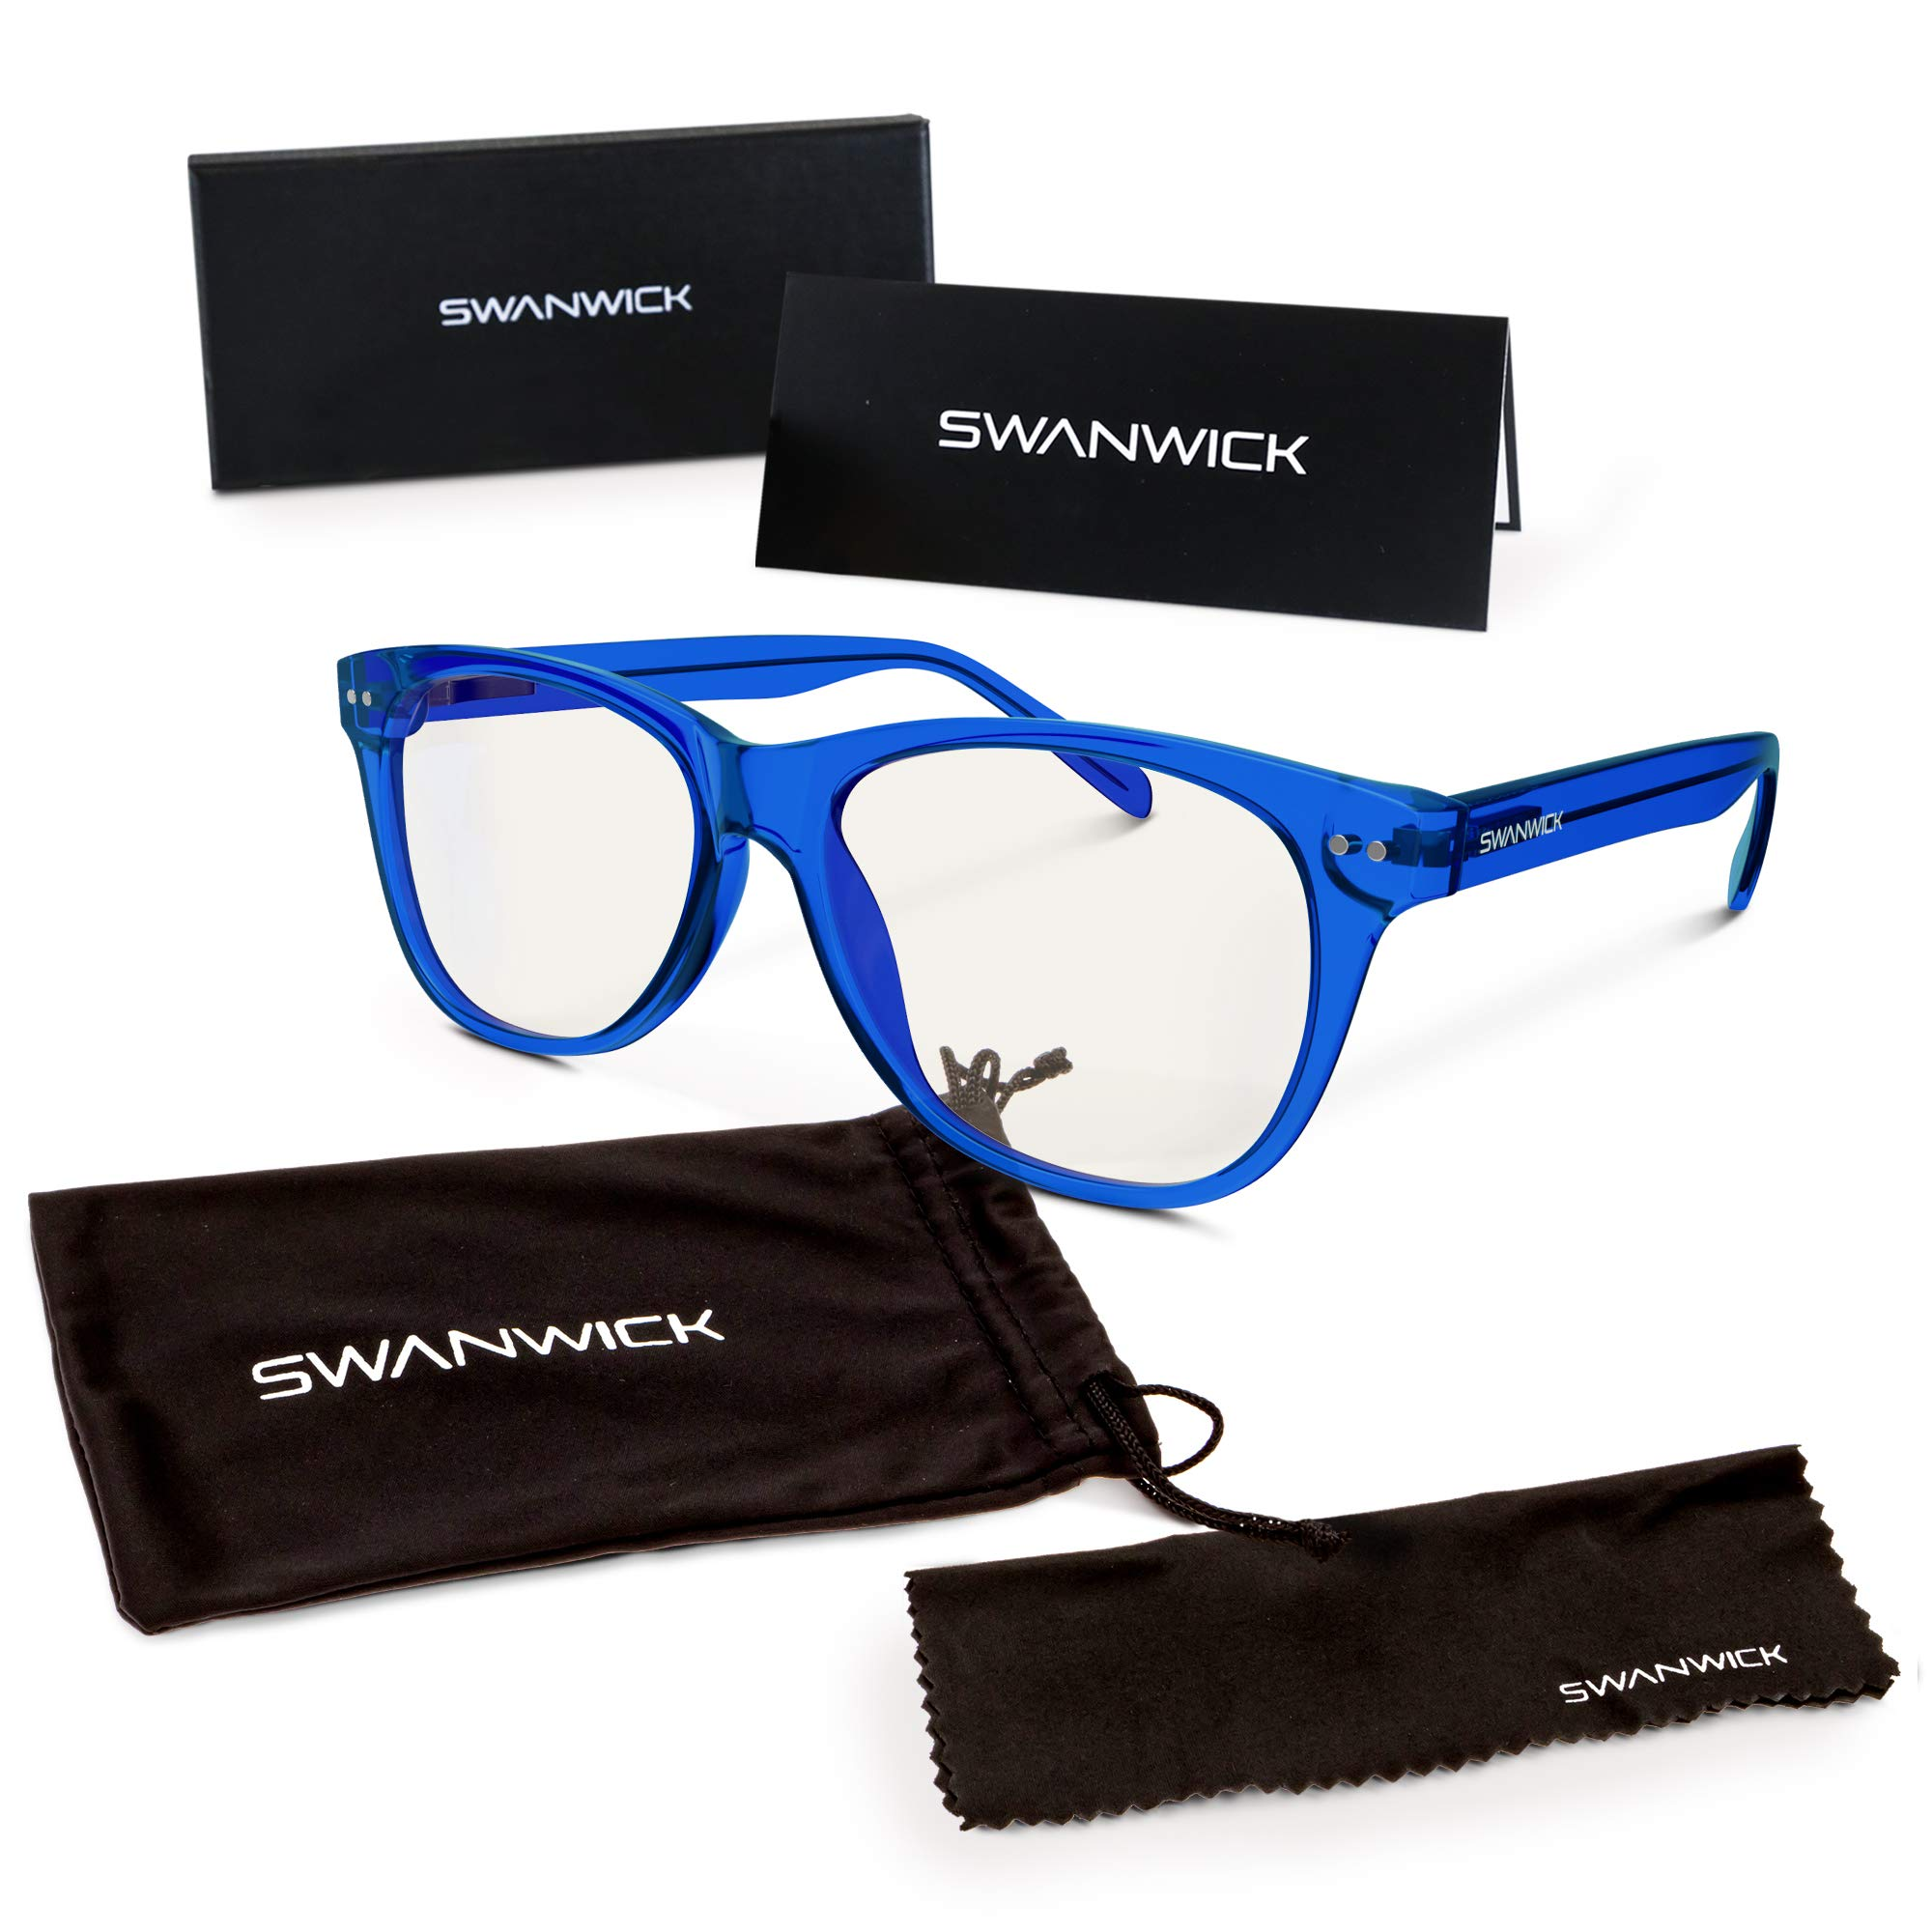 Swannies Premium Daytime Blue Light Blocking Computer Glasses for Gaming, Reading or Work - Dry Eye Relief (Crystal Sapphire) Regular